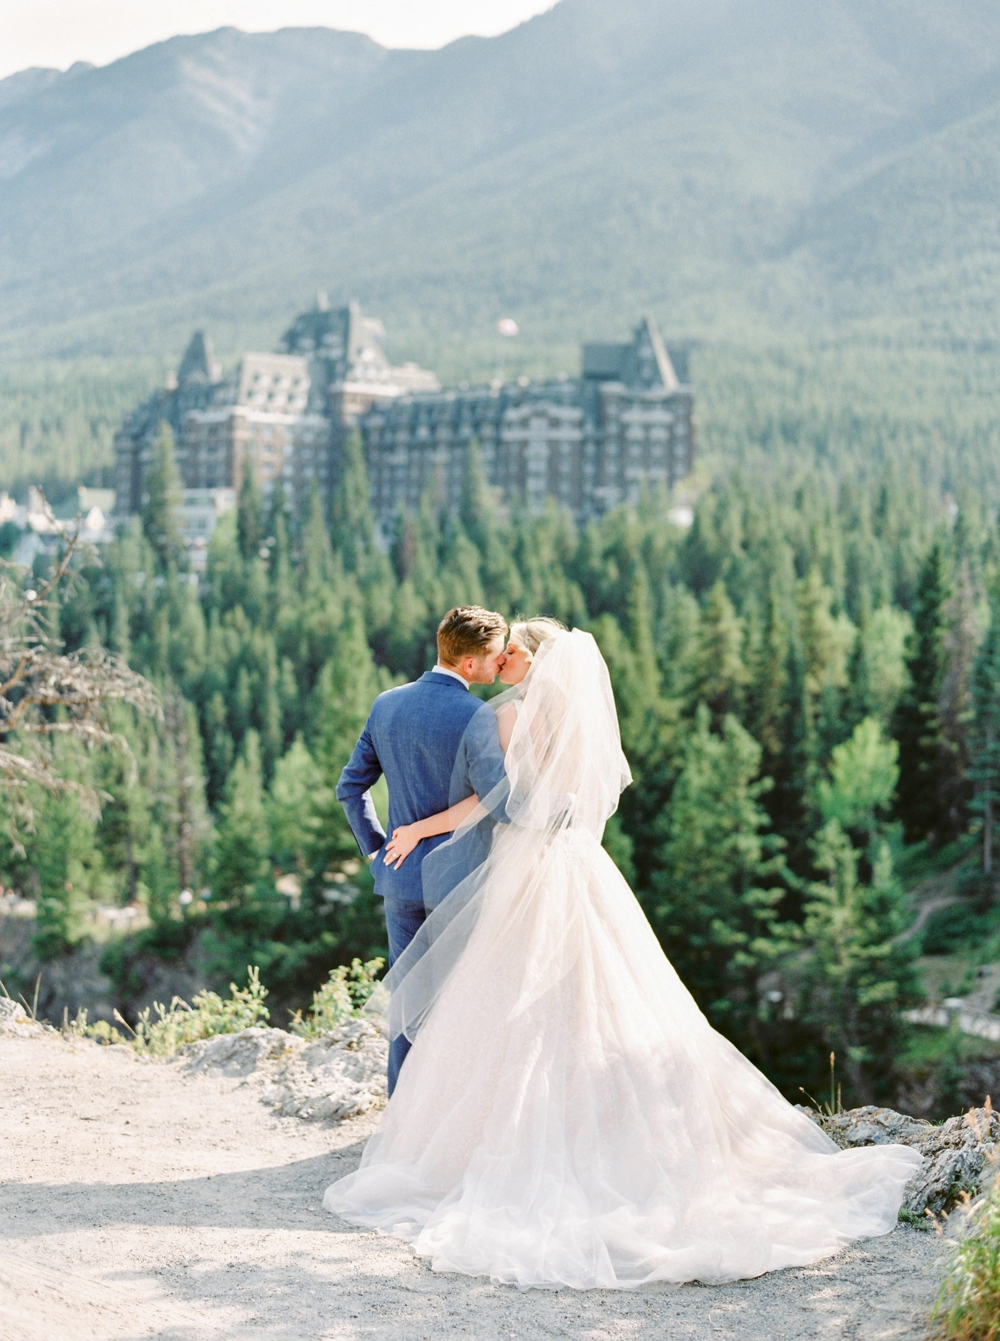 Bride and Groom portrait Surprise Corner Fairmont Banff Springs Hotel | Banff Rocky Mountain Wedding Photographers | Justine Milton fine art film photography